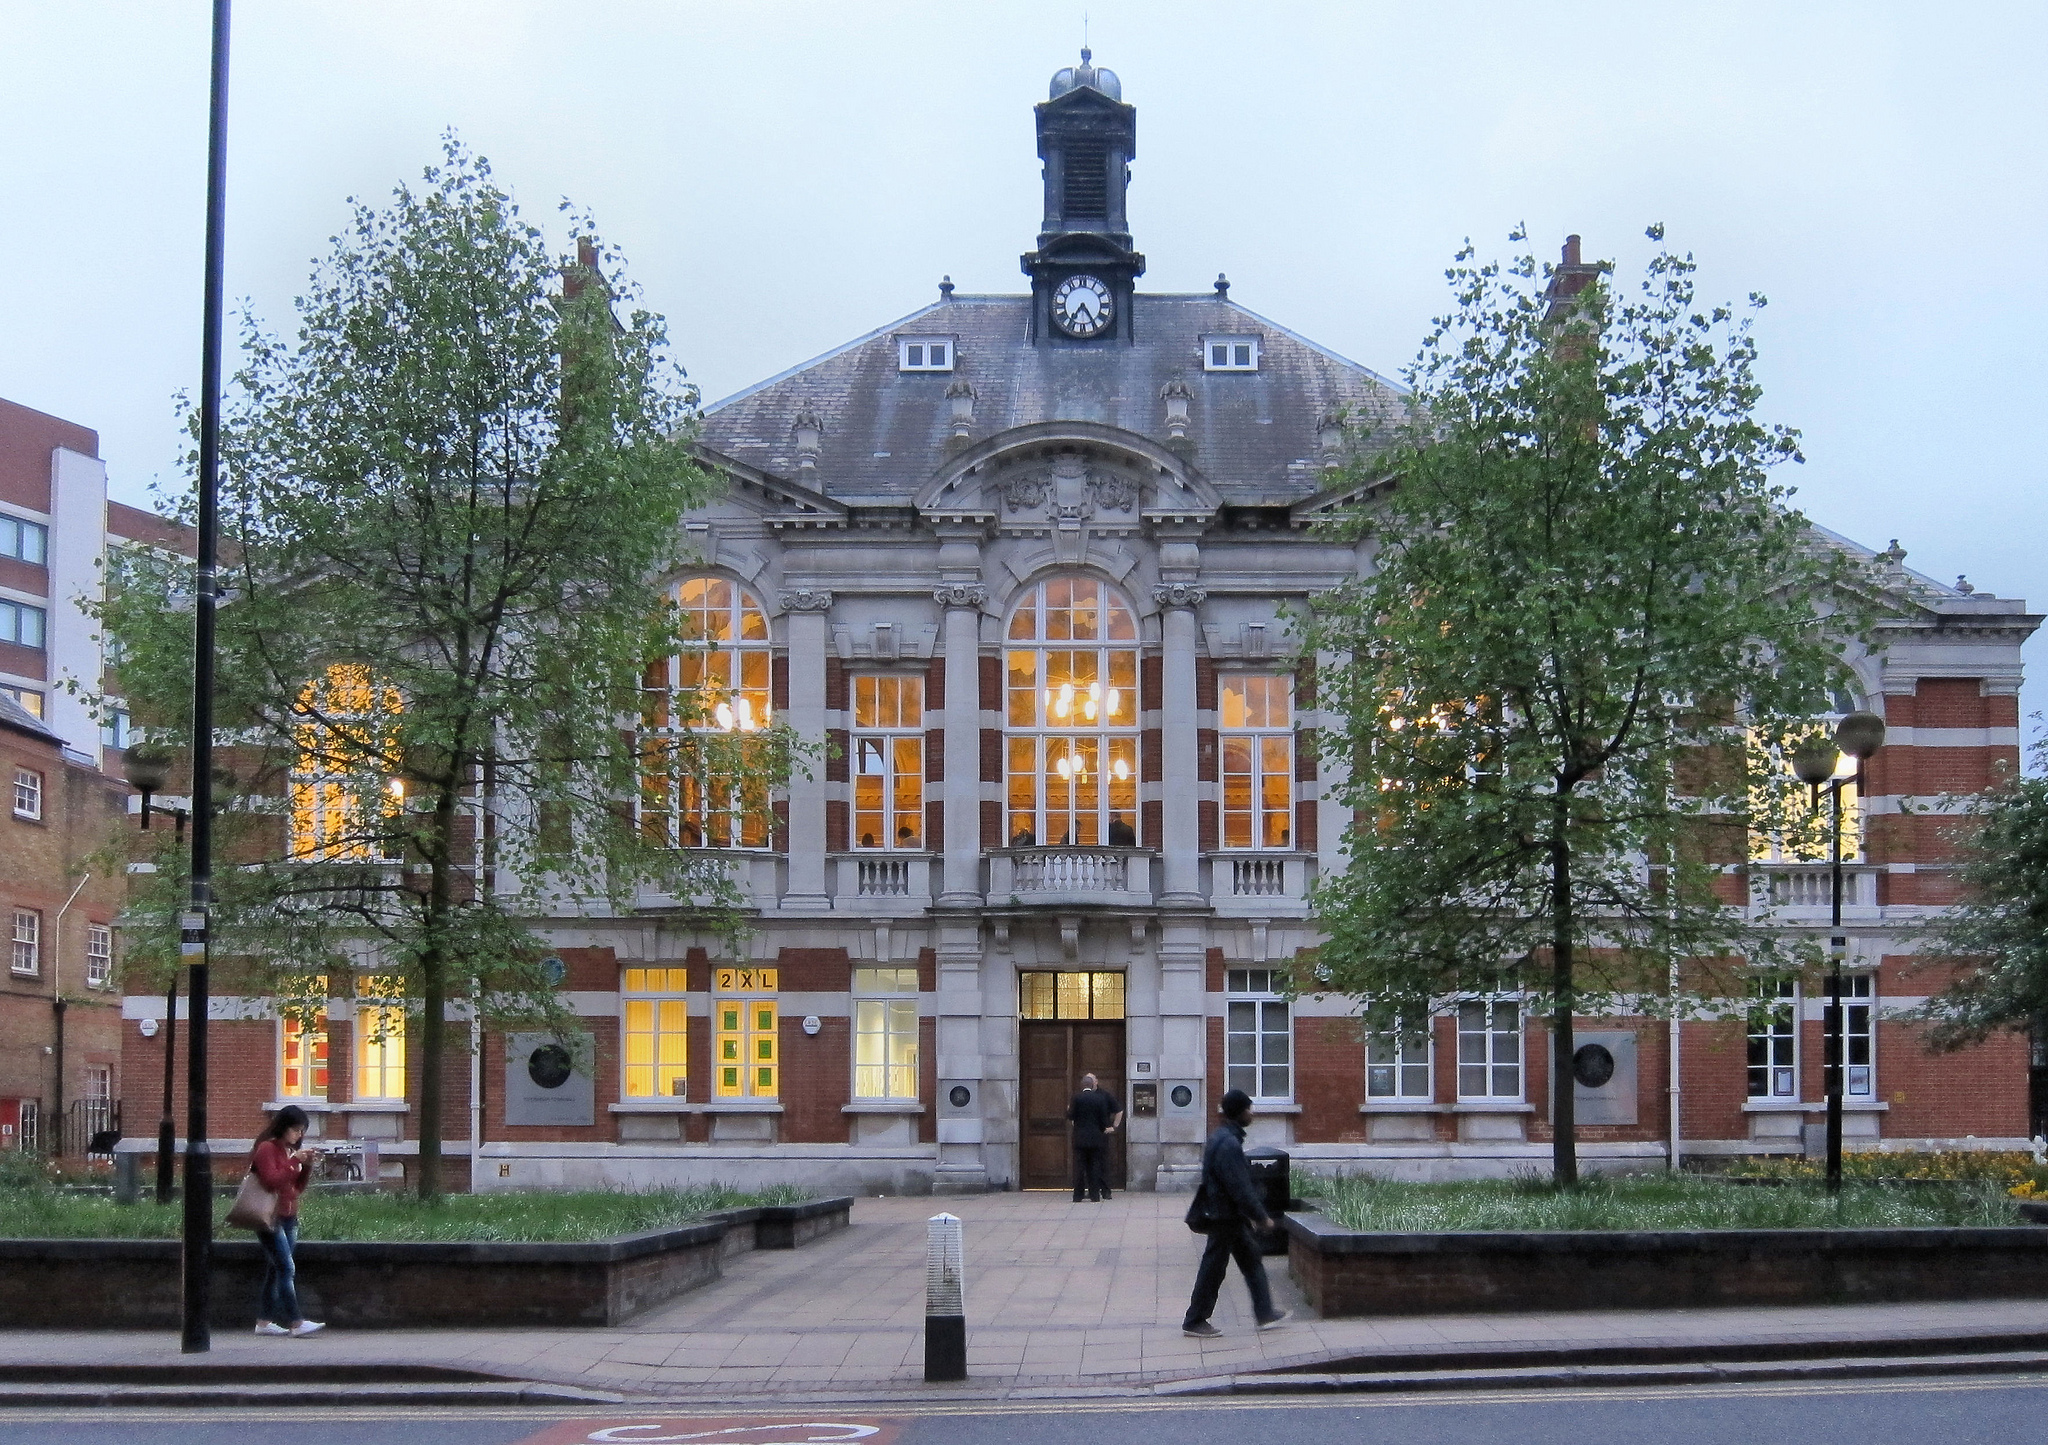 Former Tottenham Town Hall, photography by Alan Stanton